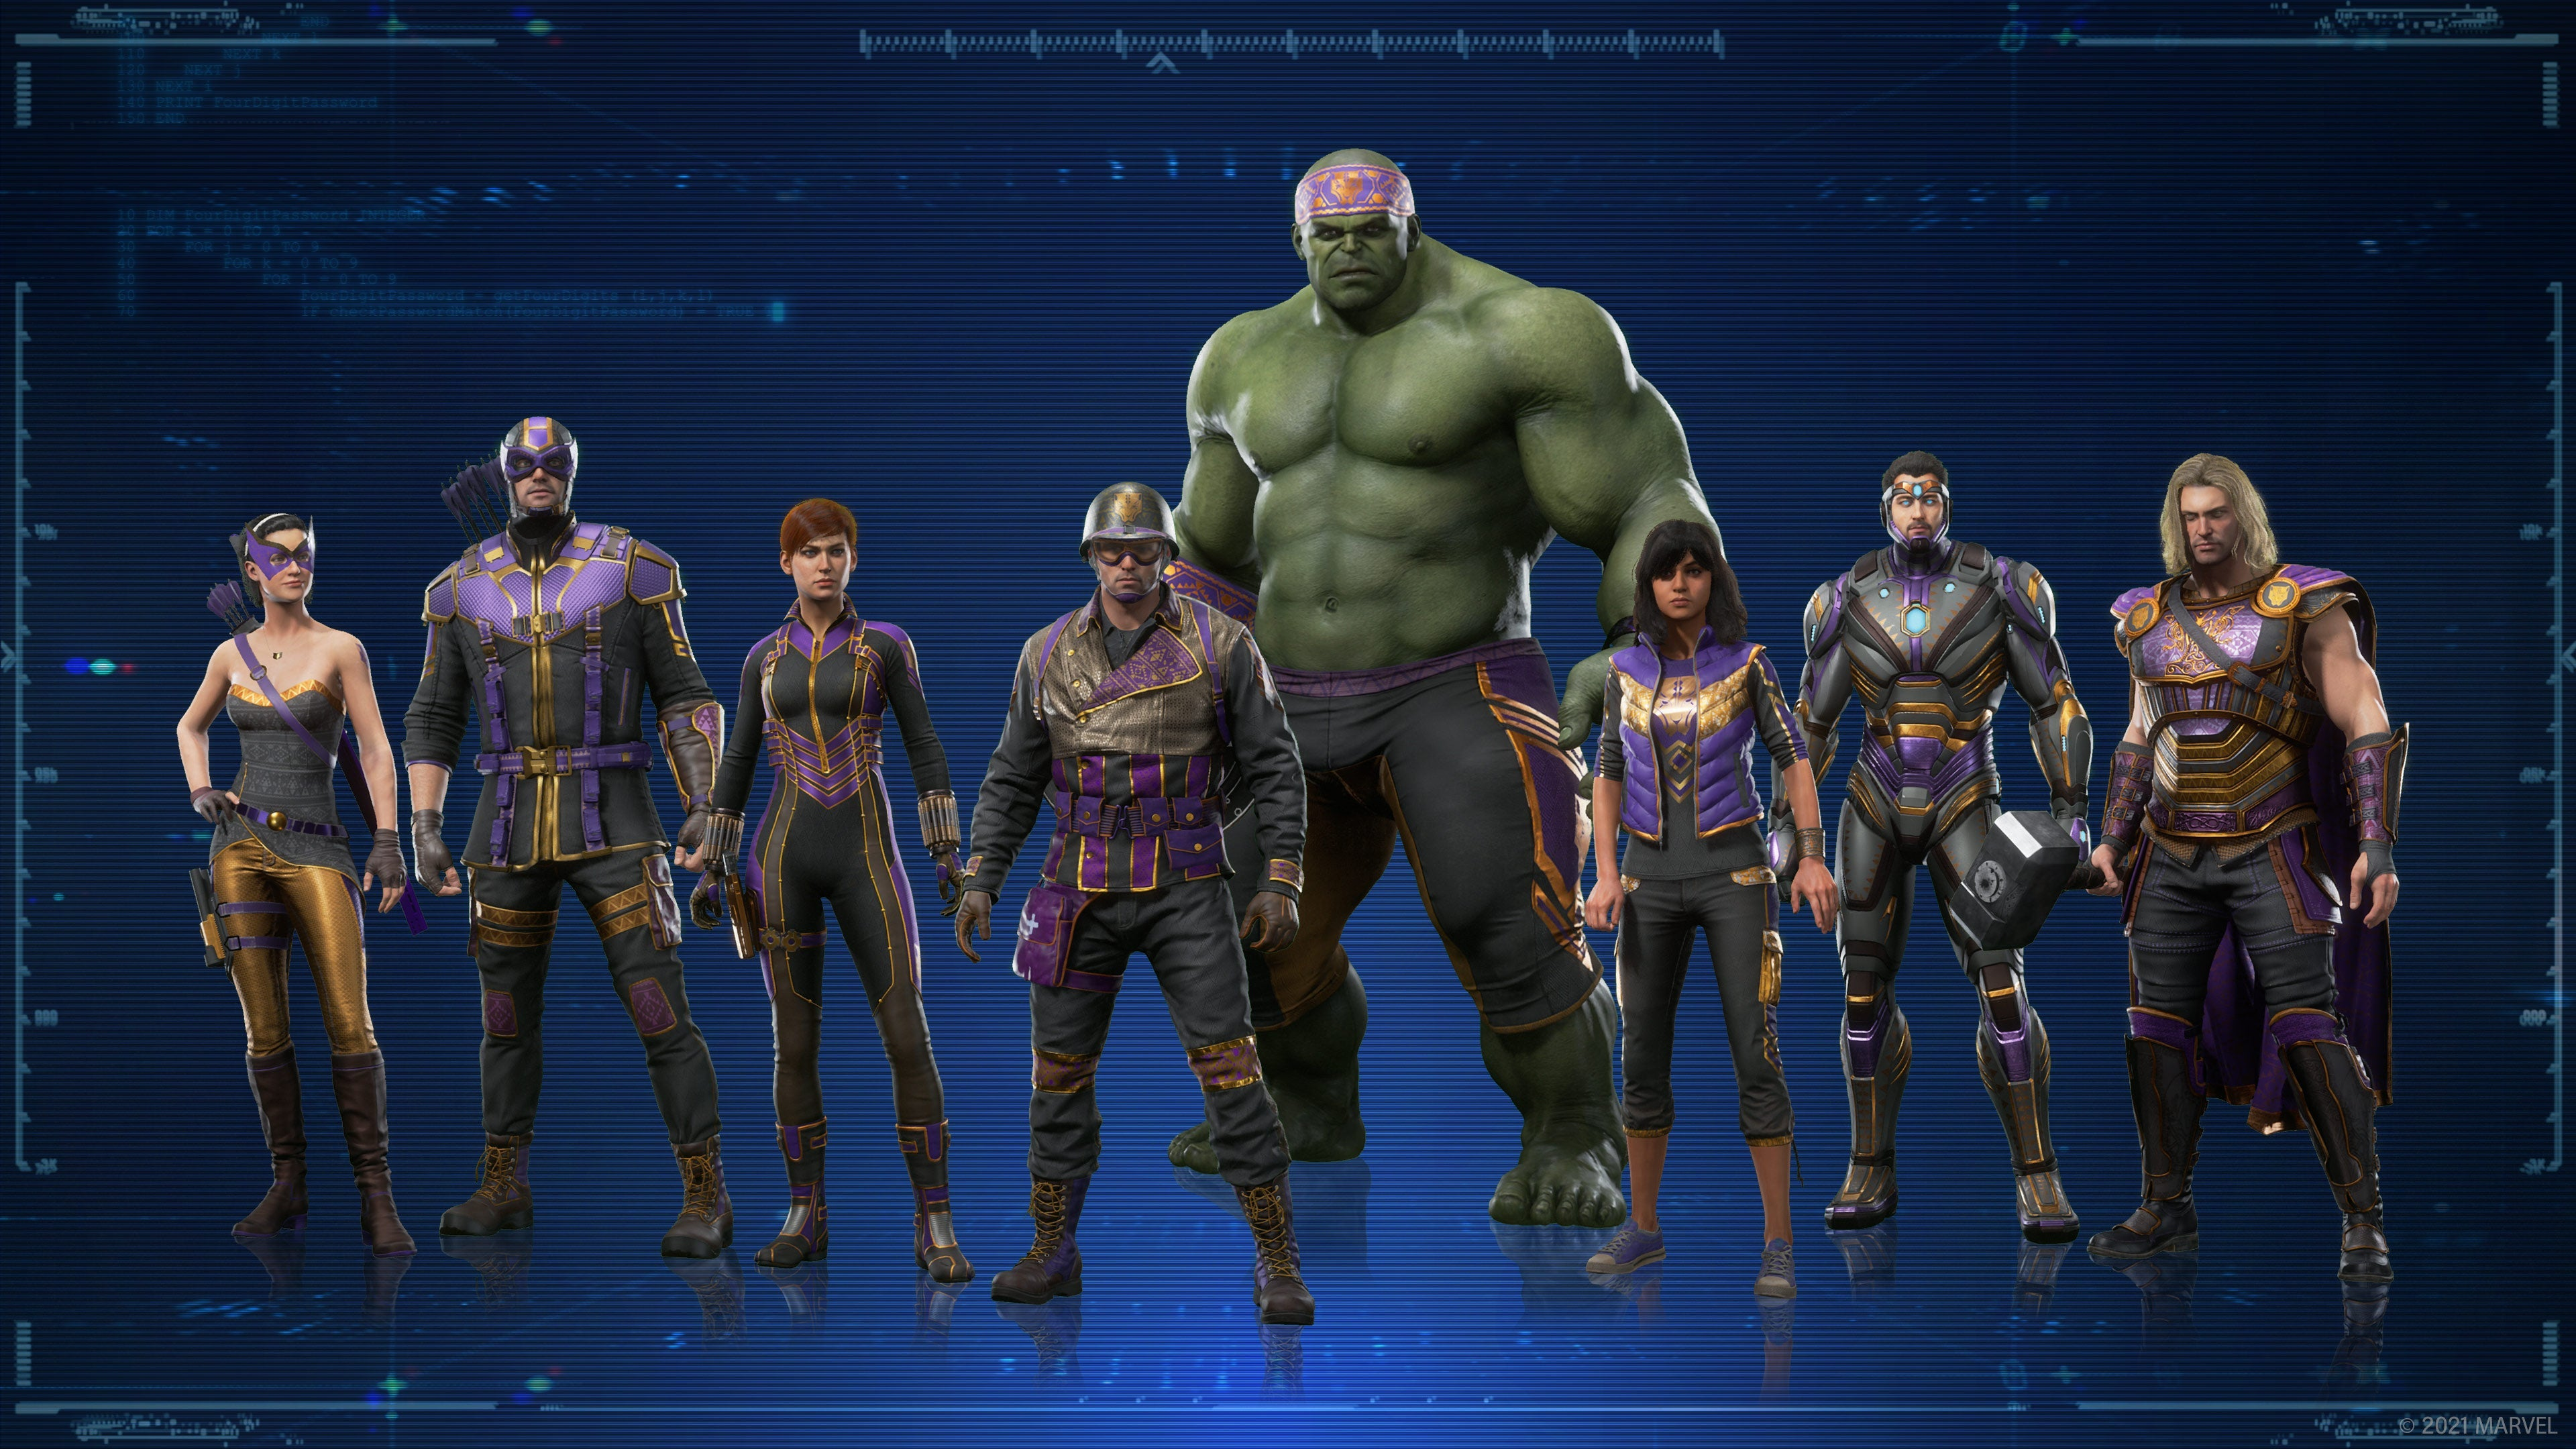 the Avengers in their Allies of Wakanda outfit set